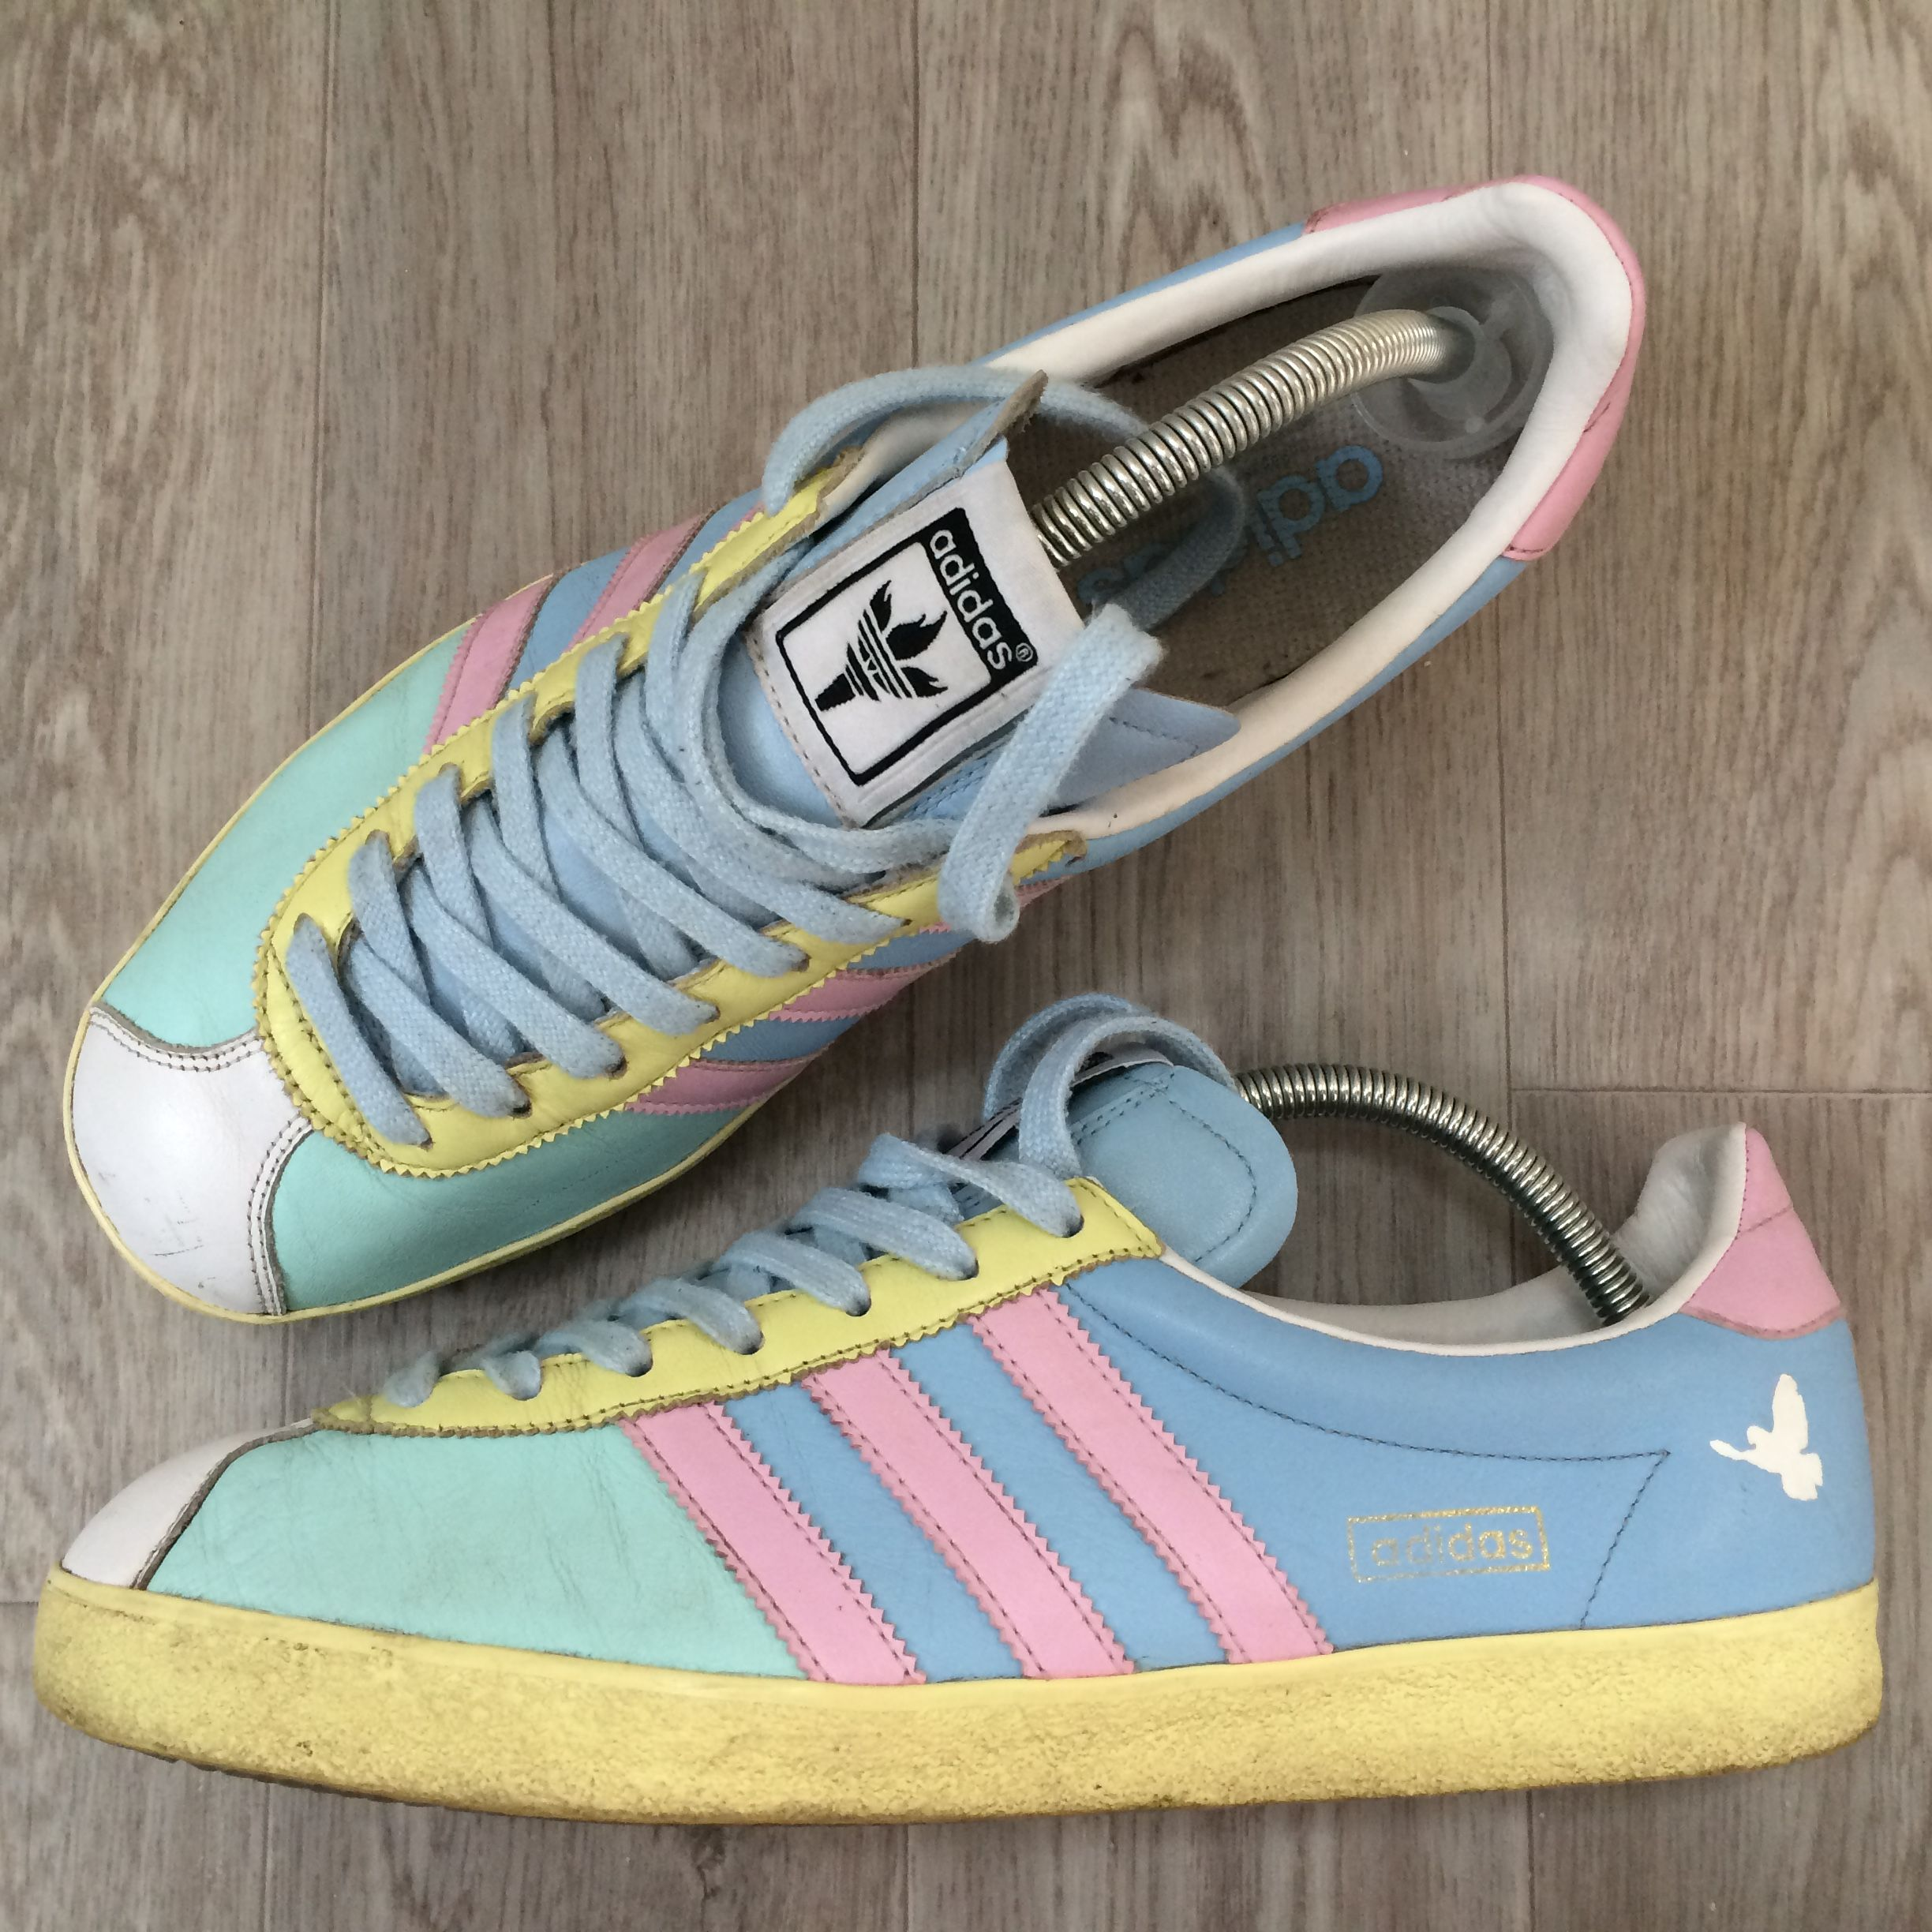 1964 VINTAGE ADIDAS WILHELM BUNGERT TENNIS SPORT SHOES 60`S AMSTERDAM KOLN  BERN in Clothes, Shoes & Accessories, Men's Shoes, Trainers | eBay |  Pinterest ...